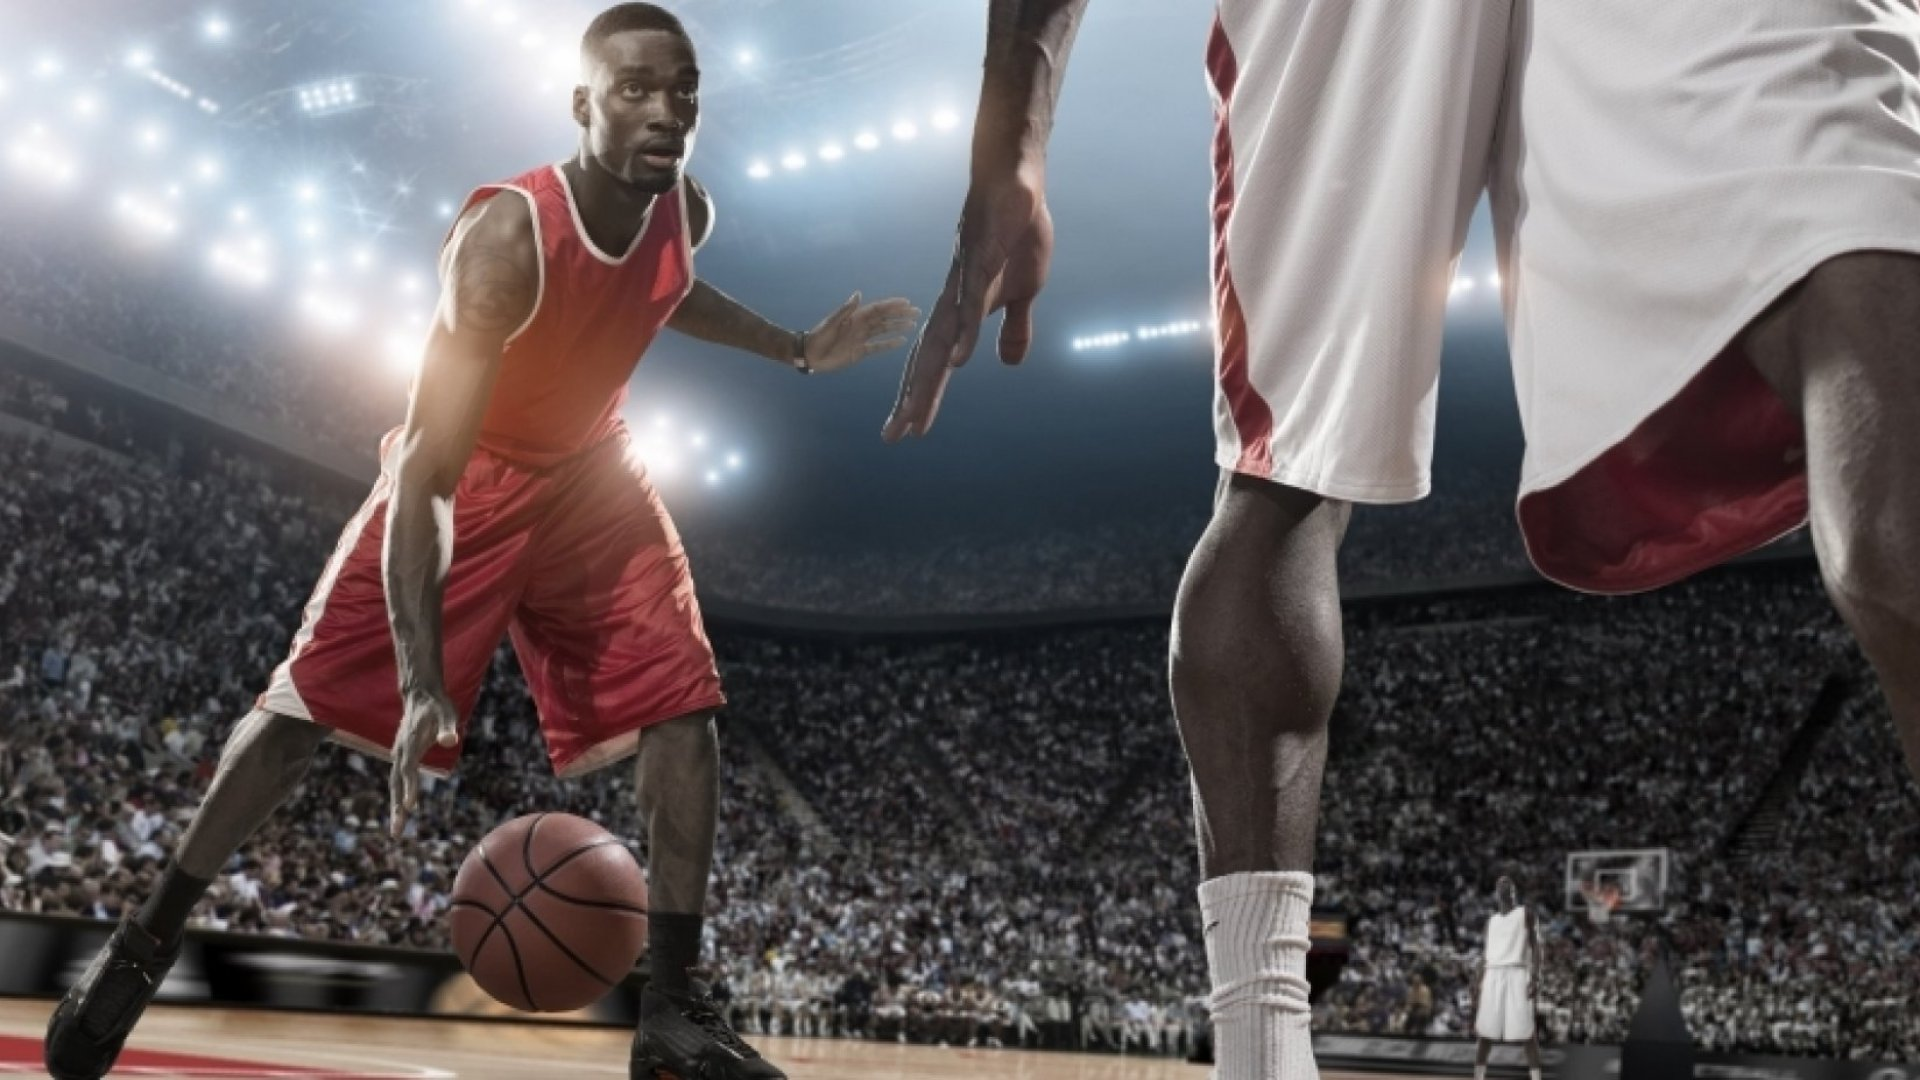 5 Basketball Court Awareness Skills You Can Use in Your Business